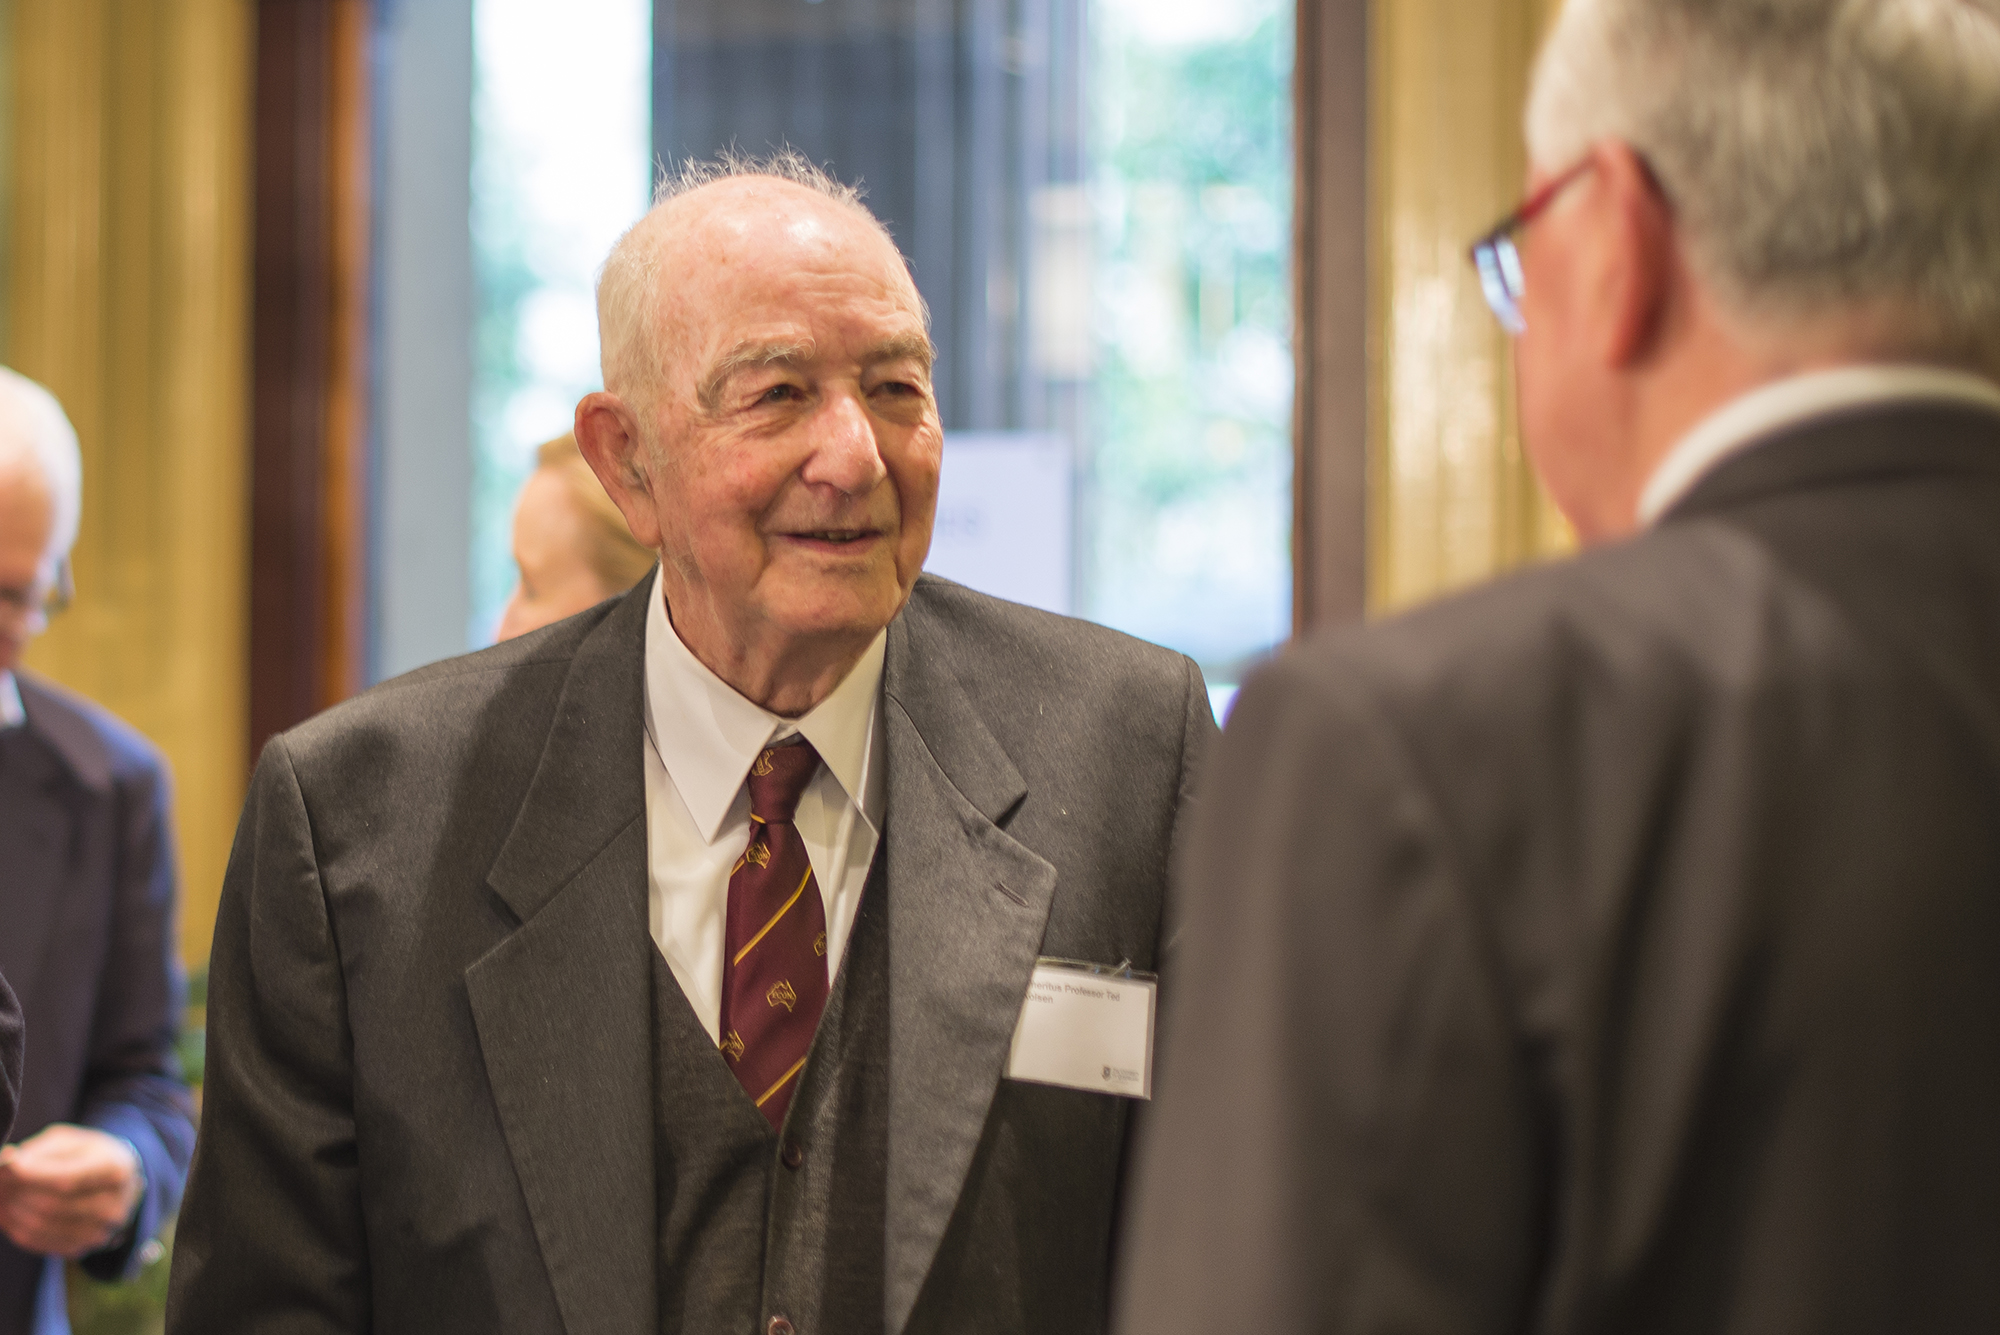 Emeritus Professor and former Head of School Ted Kolsen